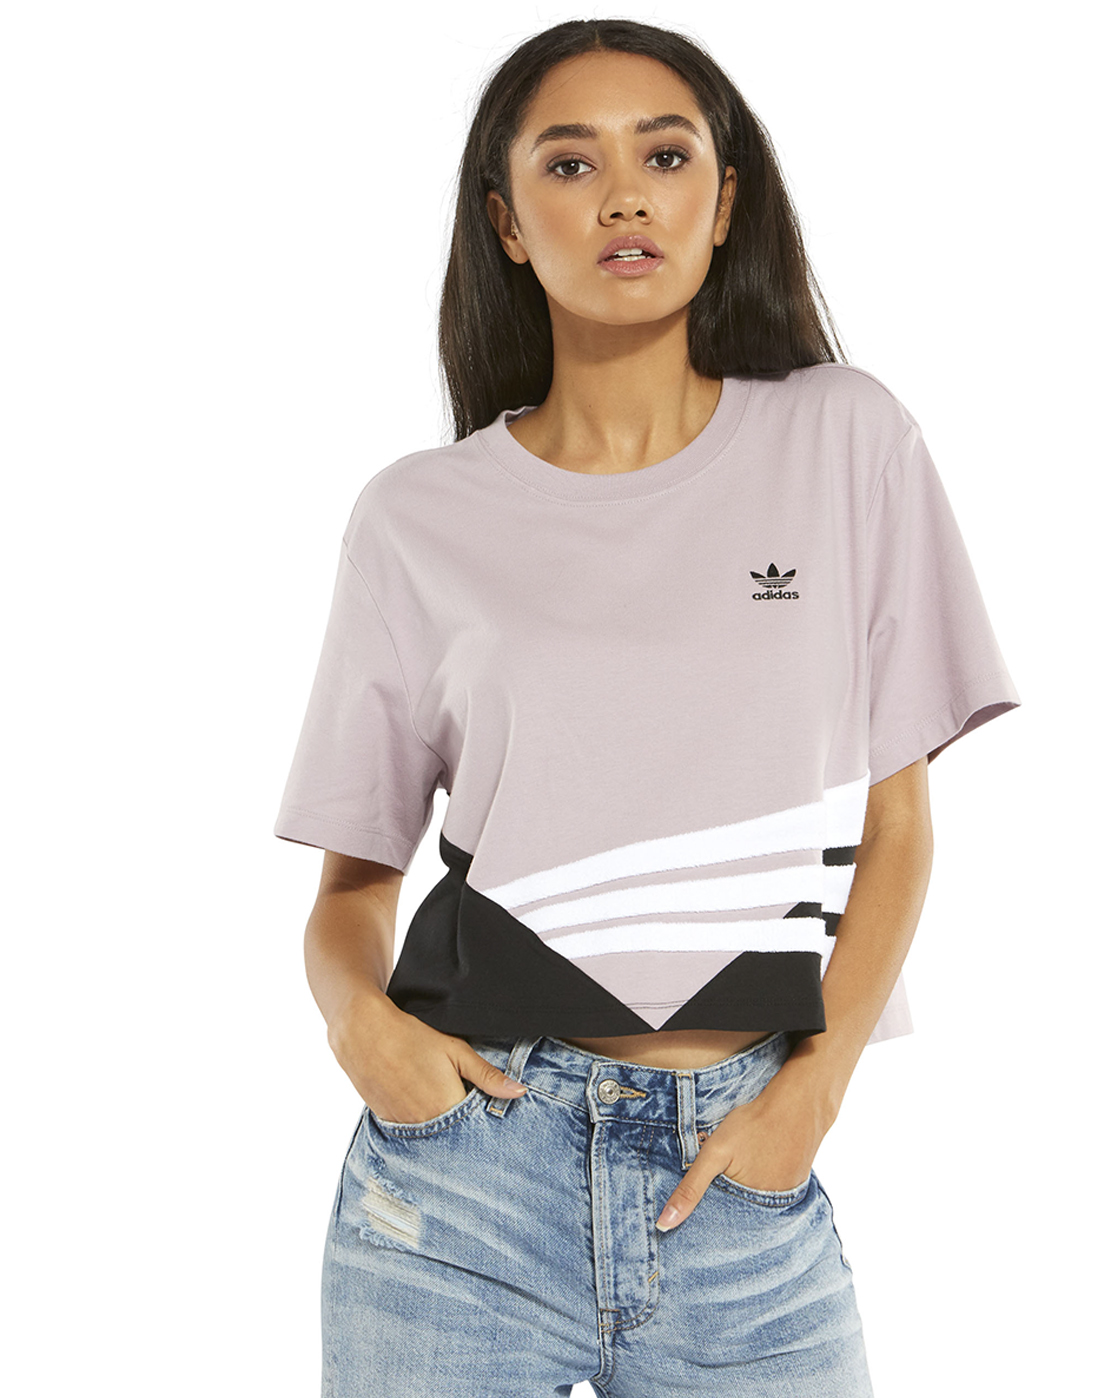 0343685f3d1a Women's Purple adidas Originals Cropped T-Shirt | Life Style Sports